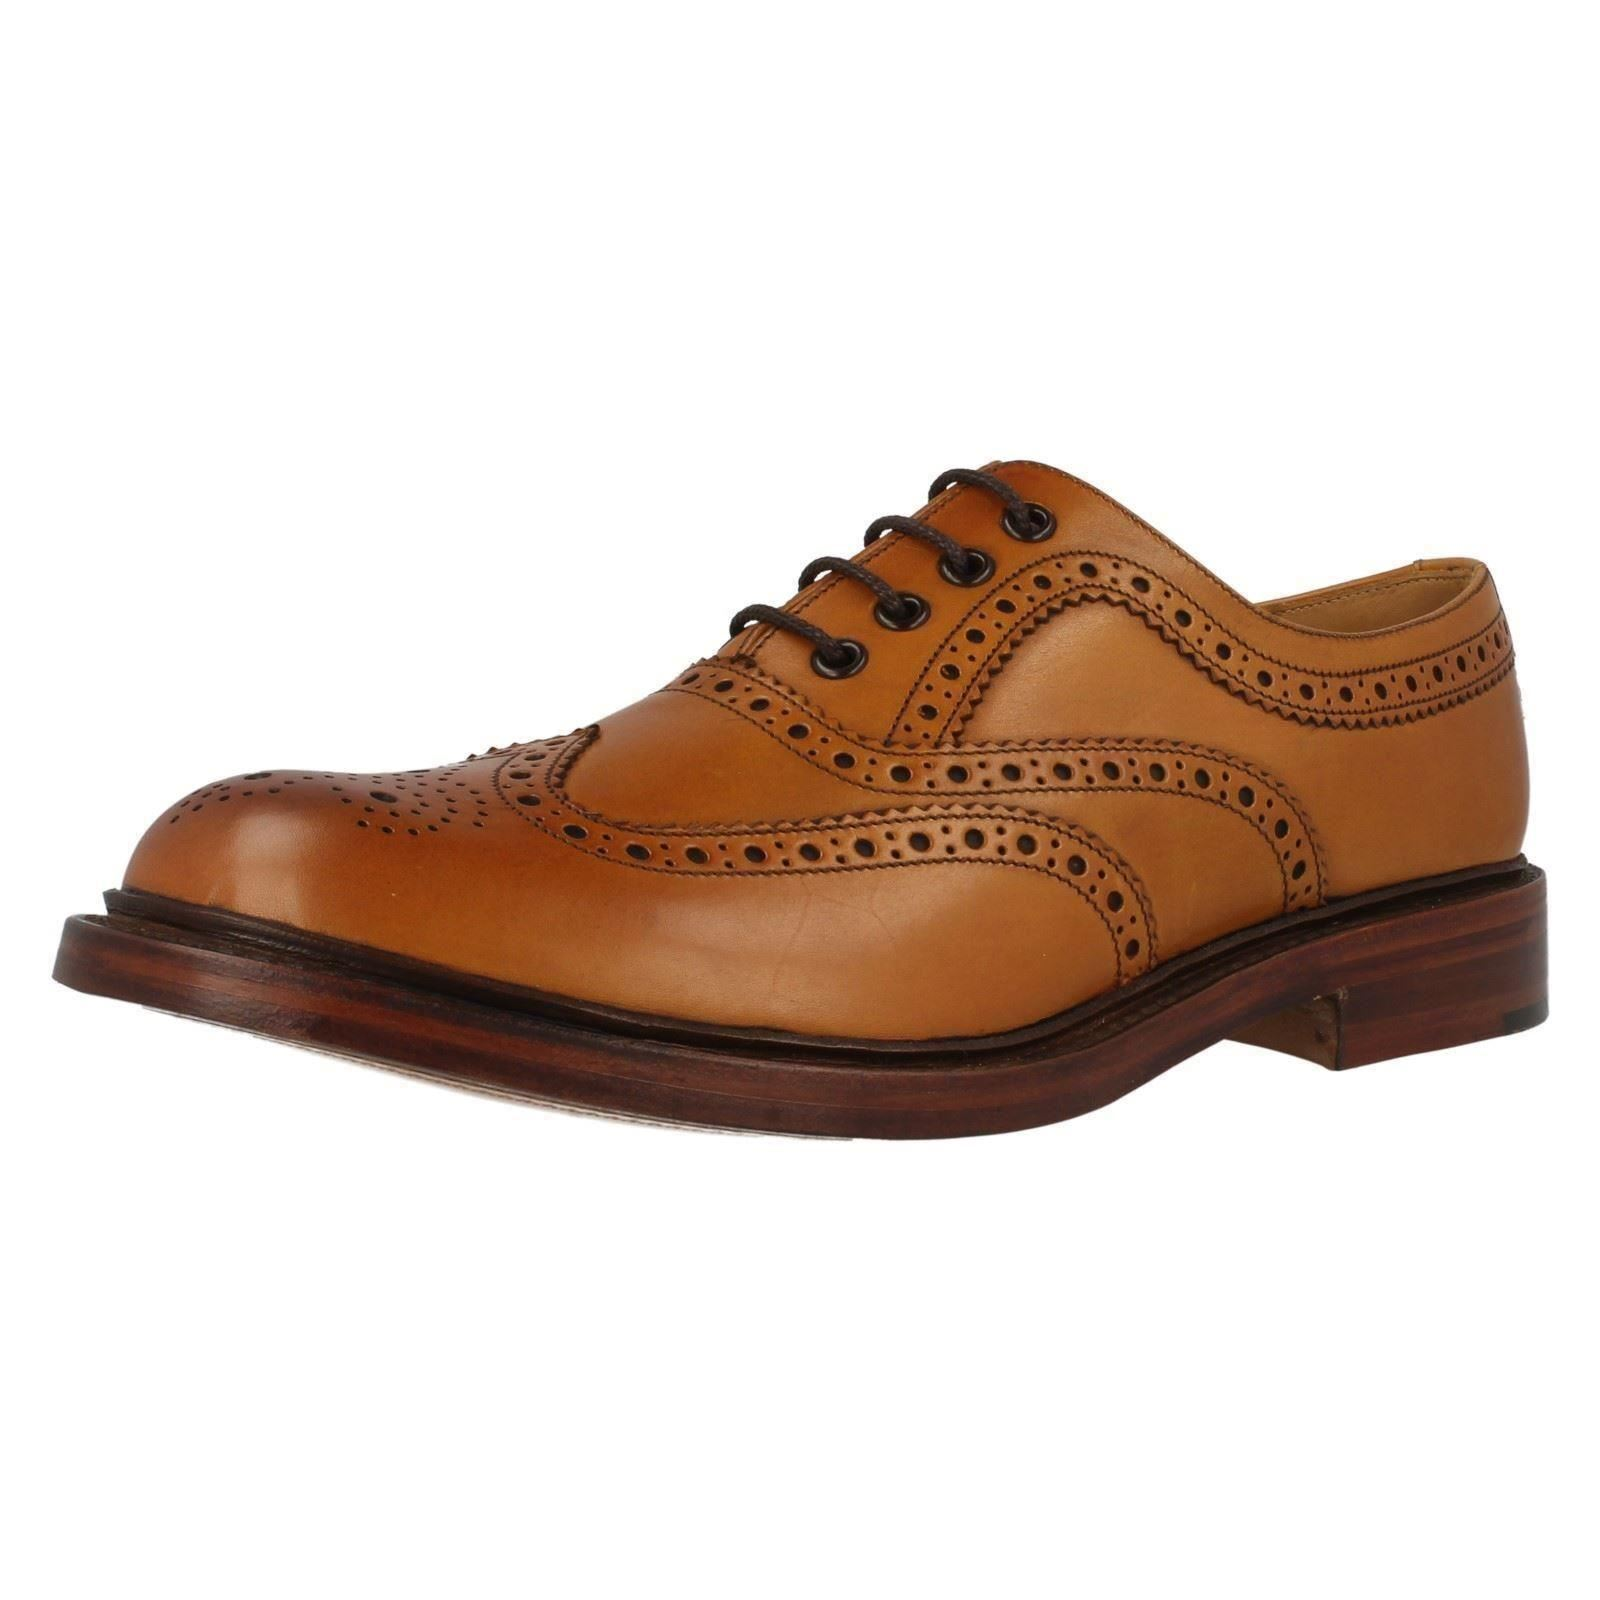 MENS LOAKE LEATHER TAN LACE UP BROGUE STYLE ASHBY TAN